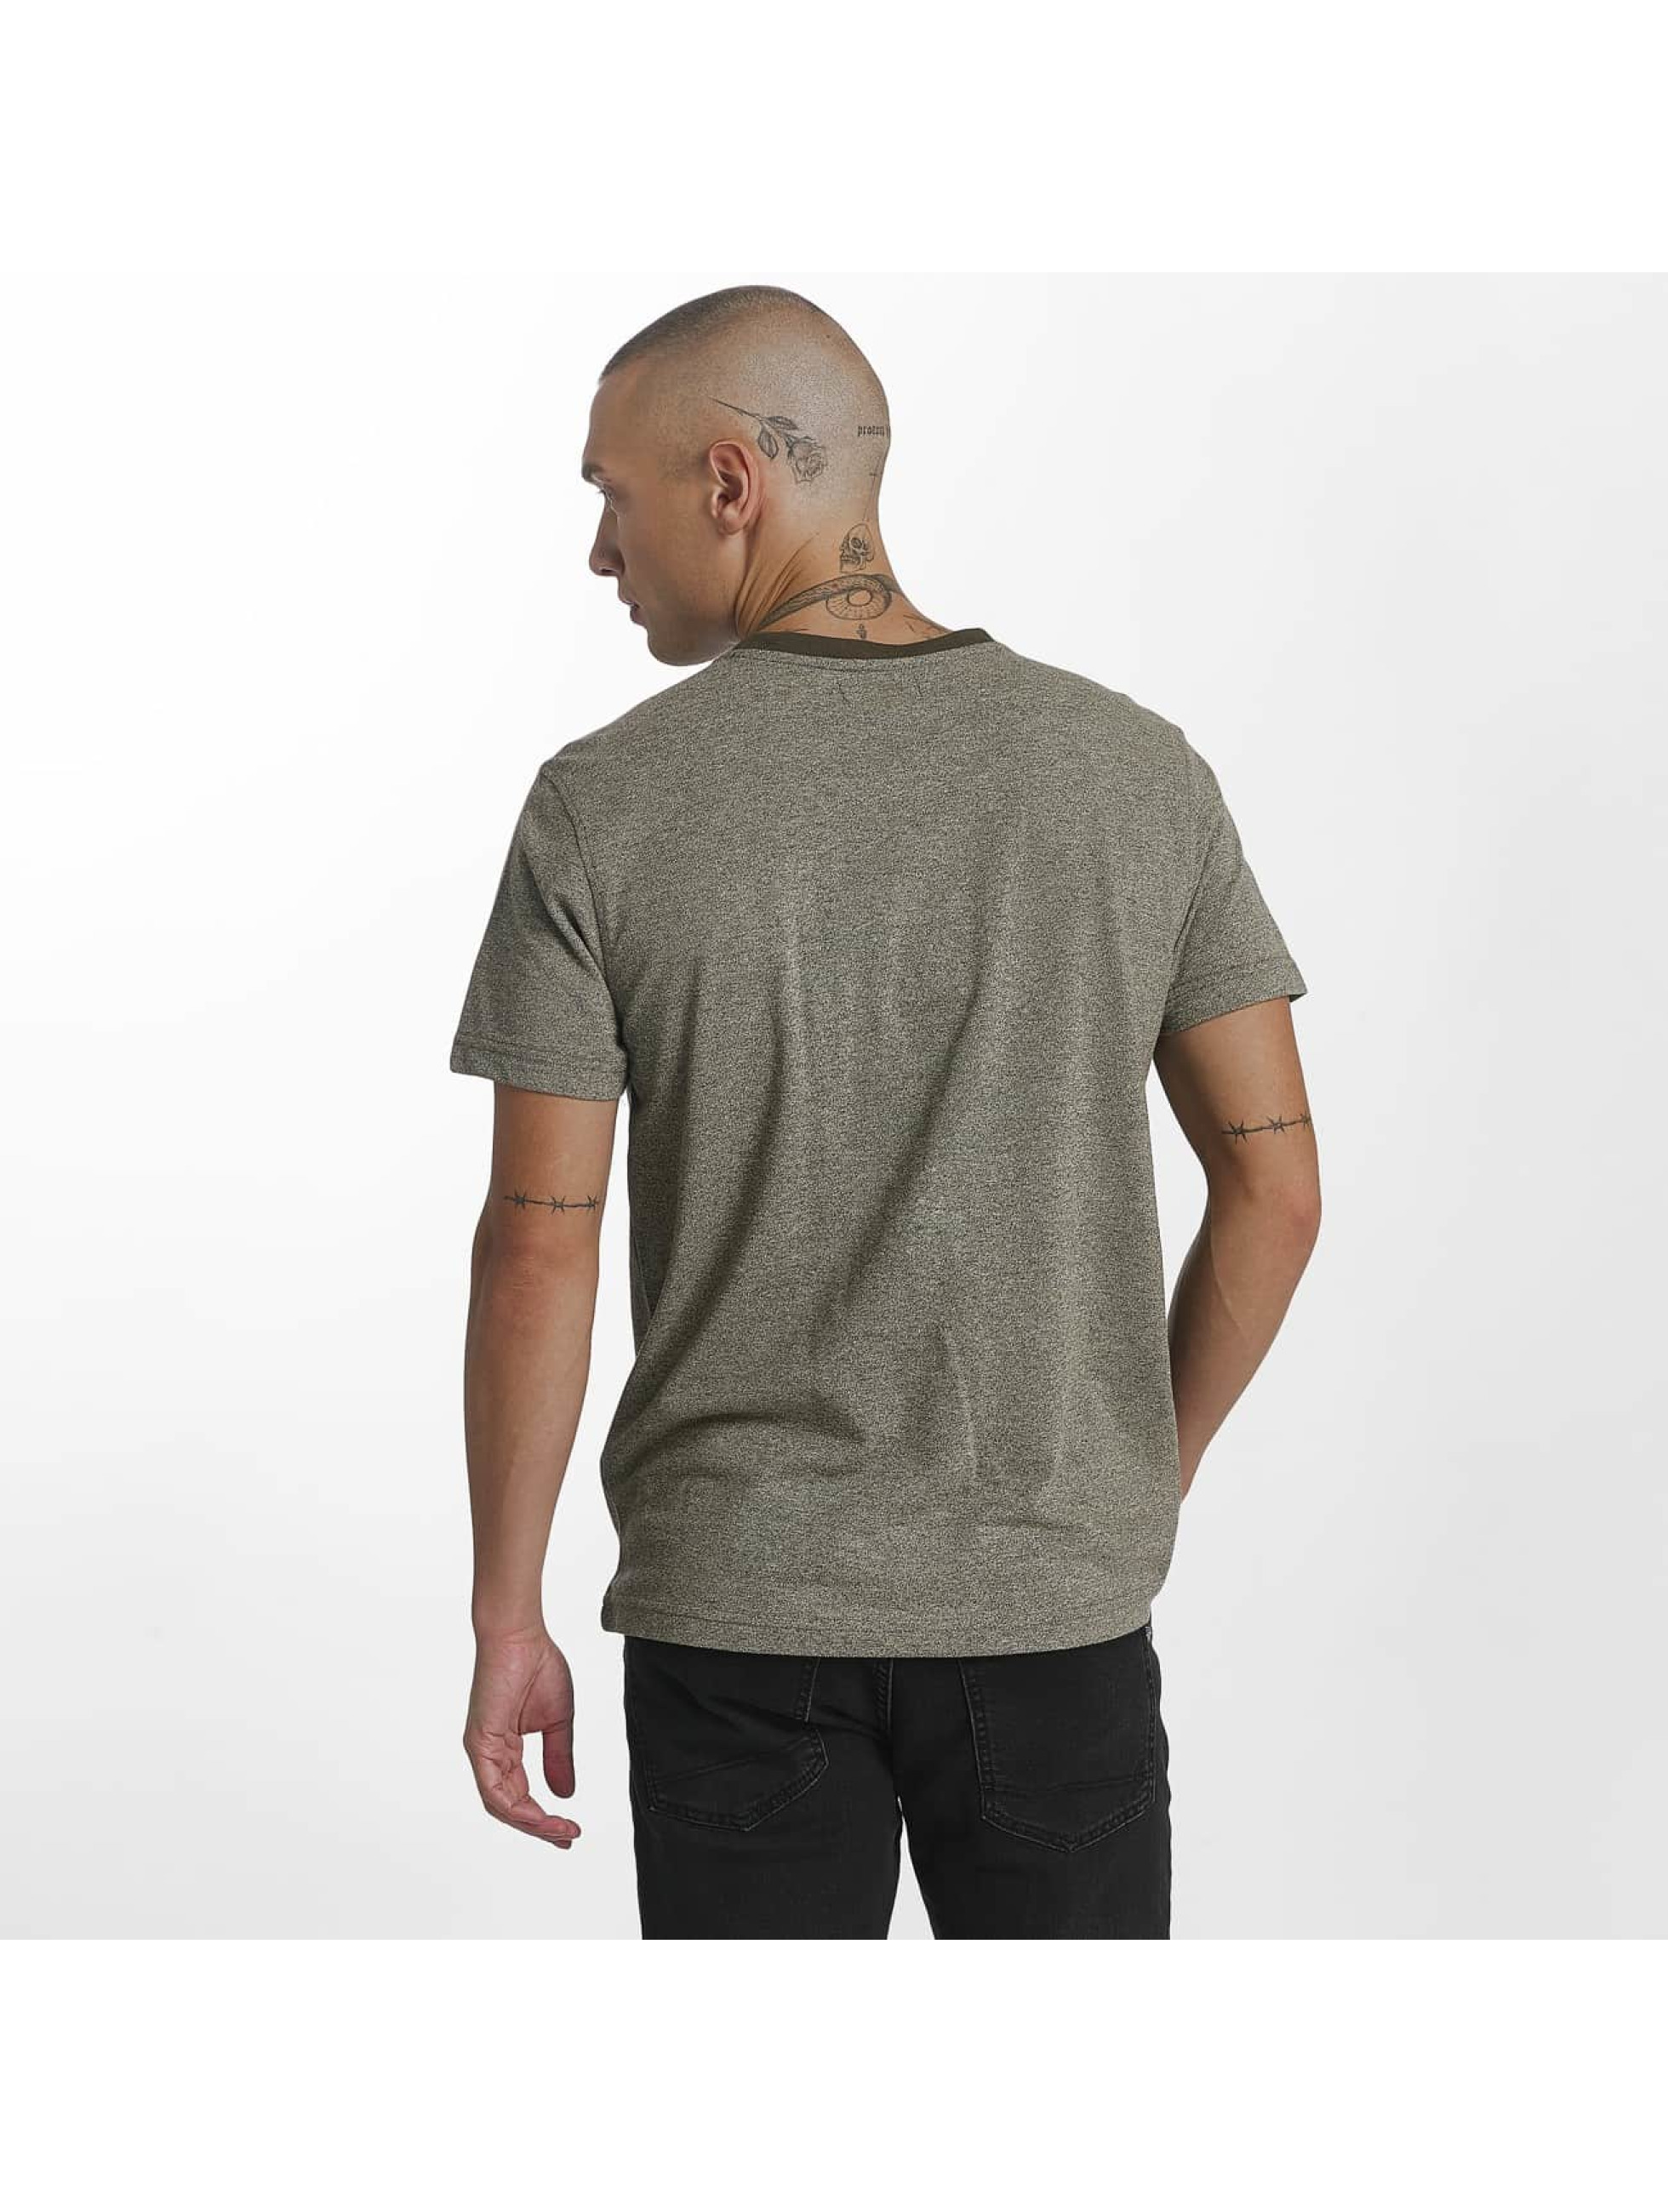 Reell Jeans T-shirt Pique oliva